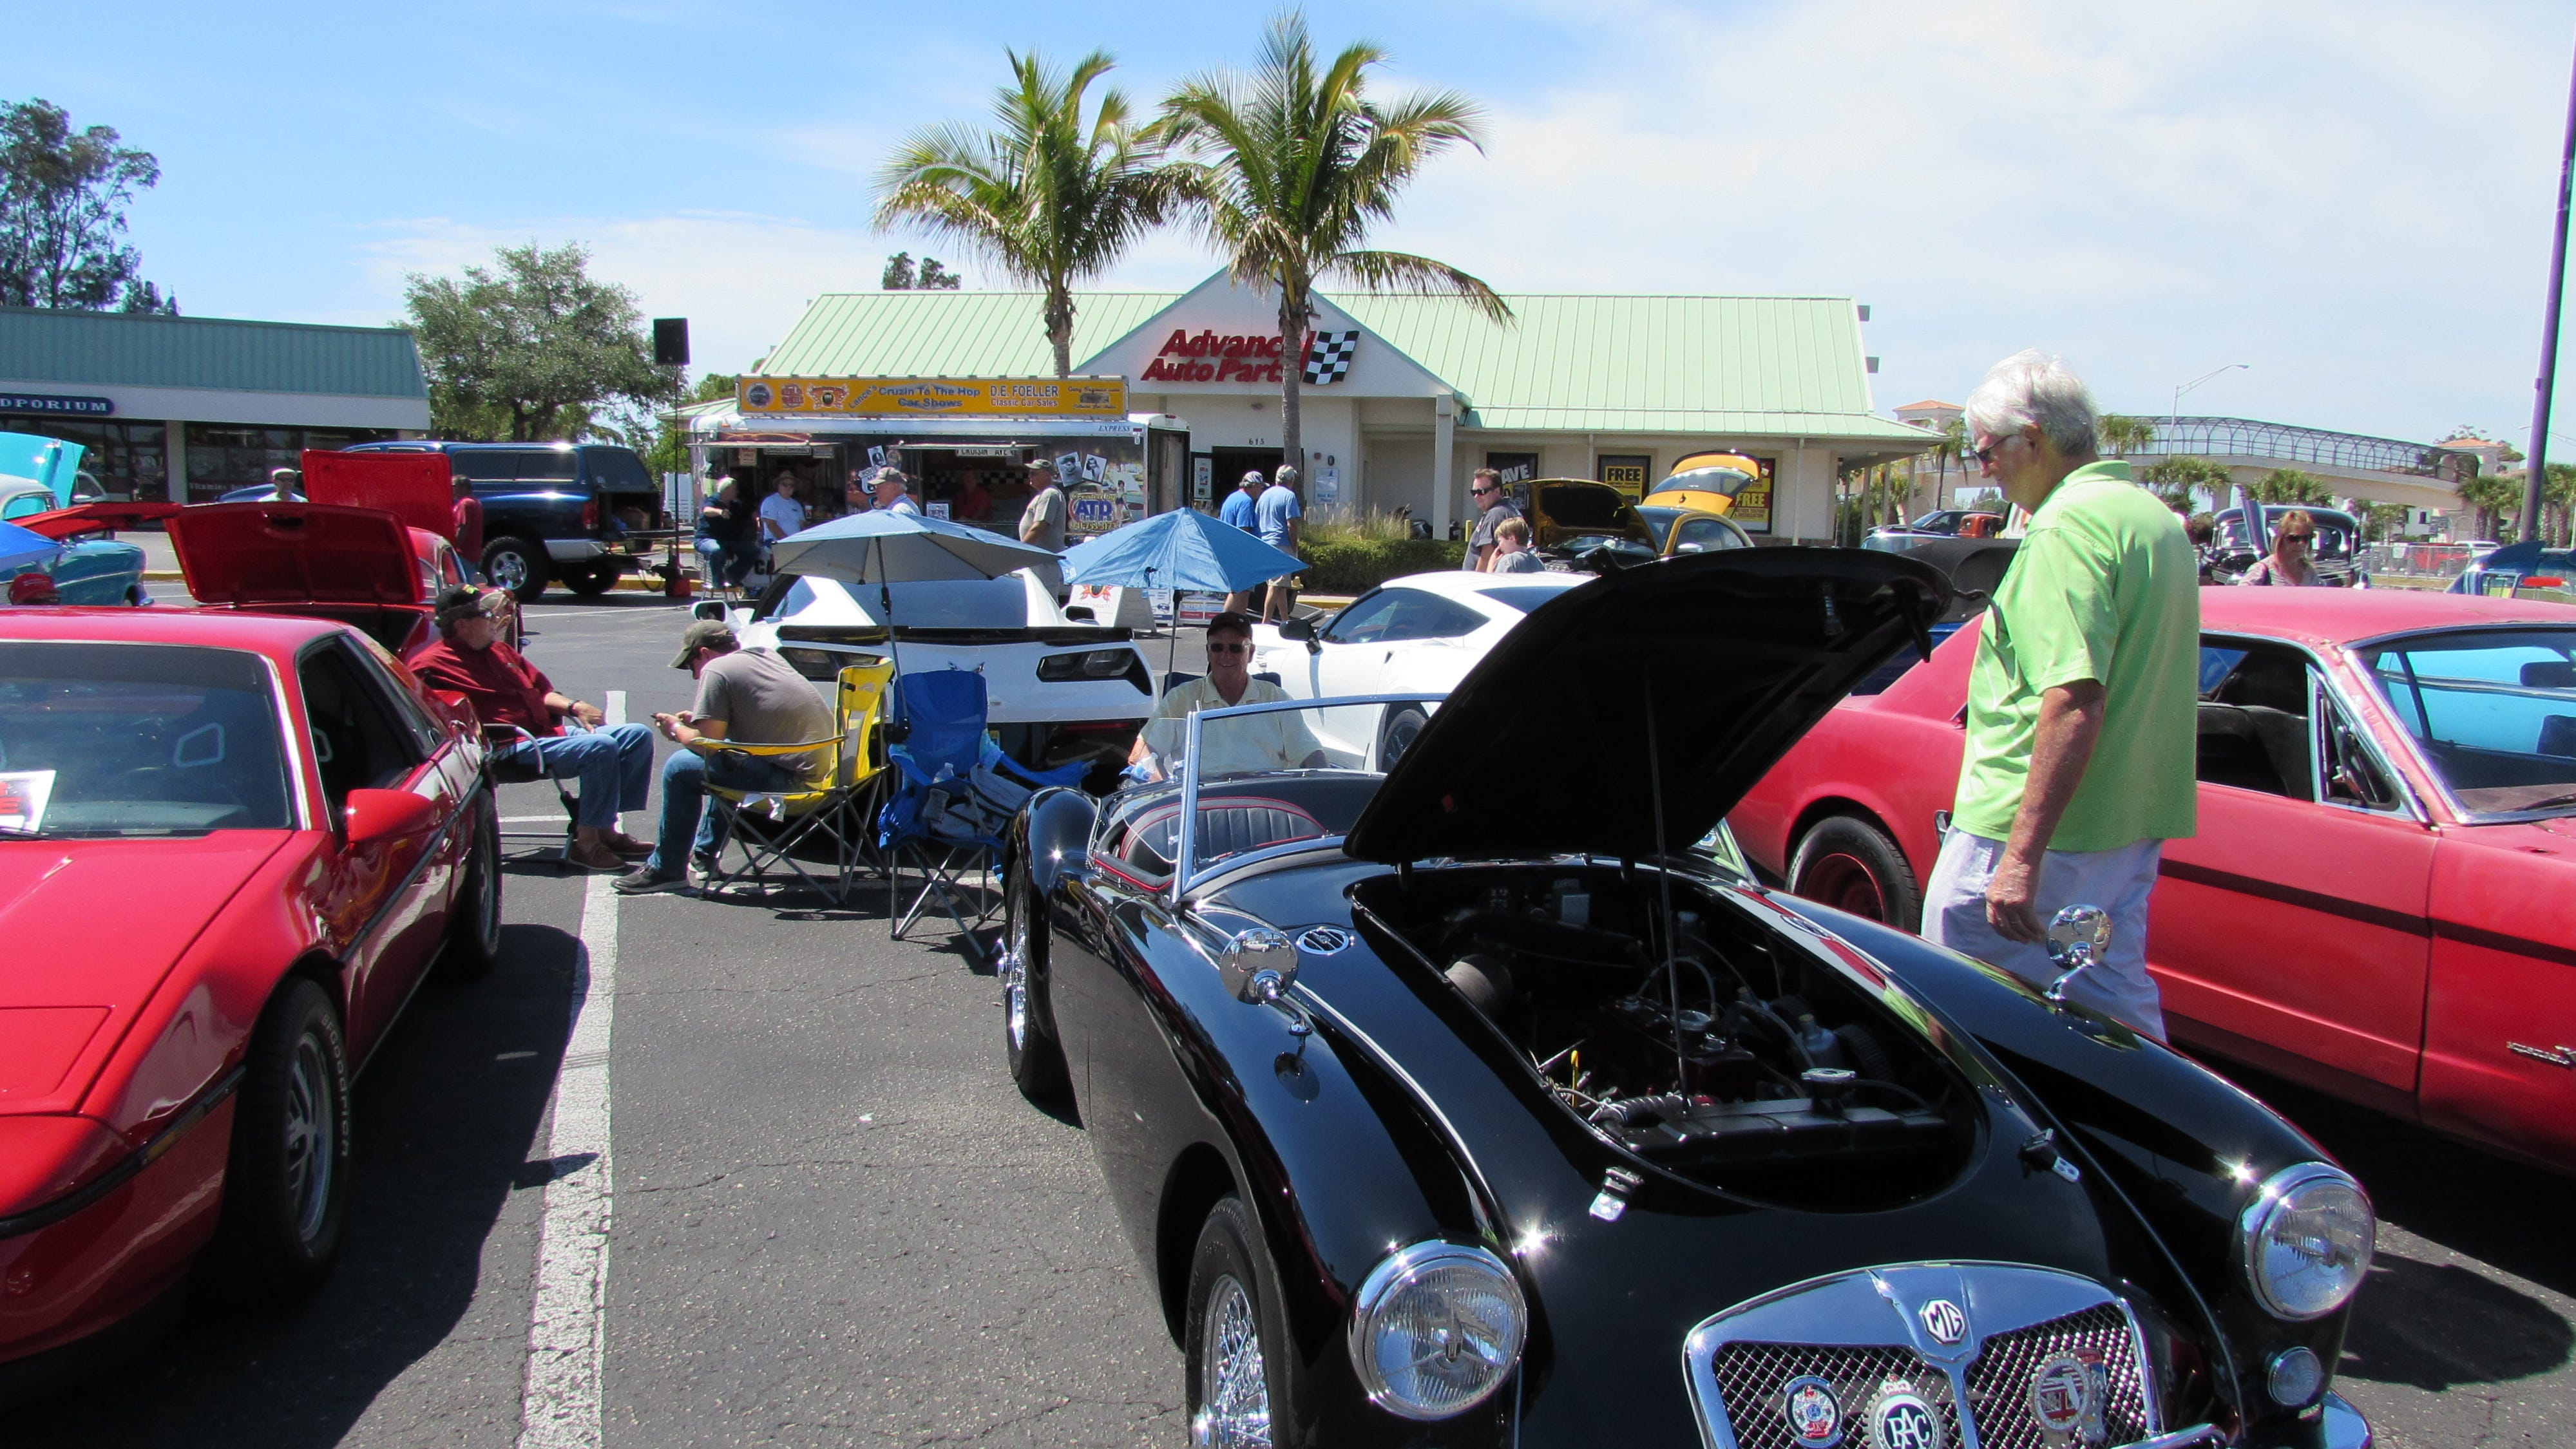 A 1957 MGA Roadster is on display at a Lance's Cruzin to the Hop auto show in the parking lot of show sponsor Advance Auto Parts of Venice.